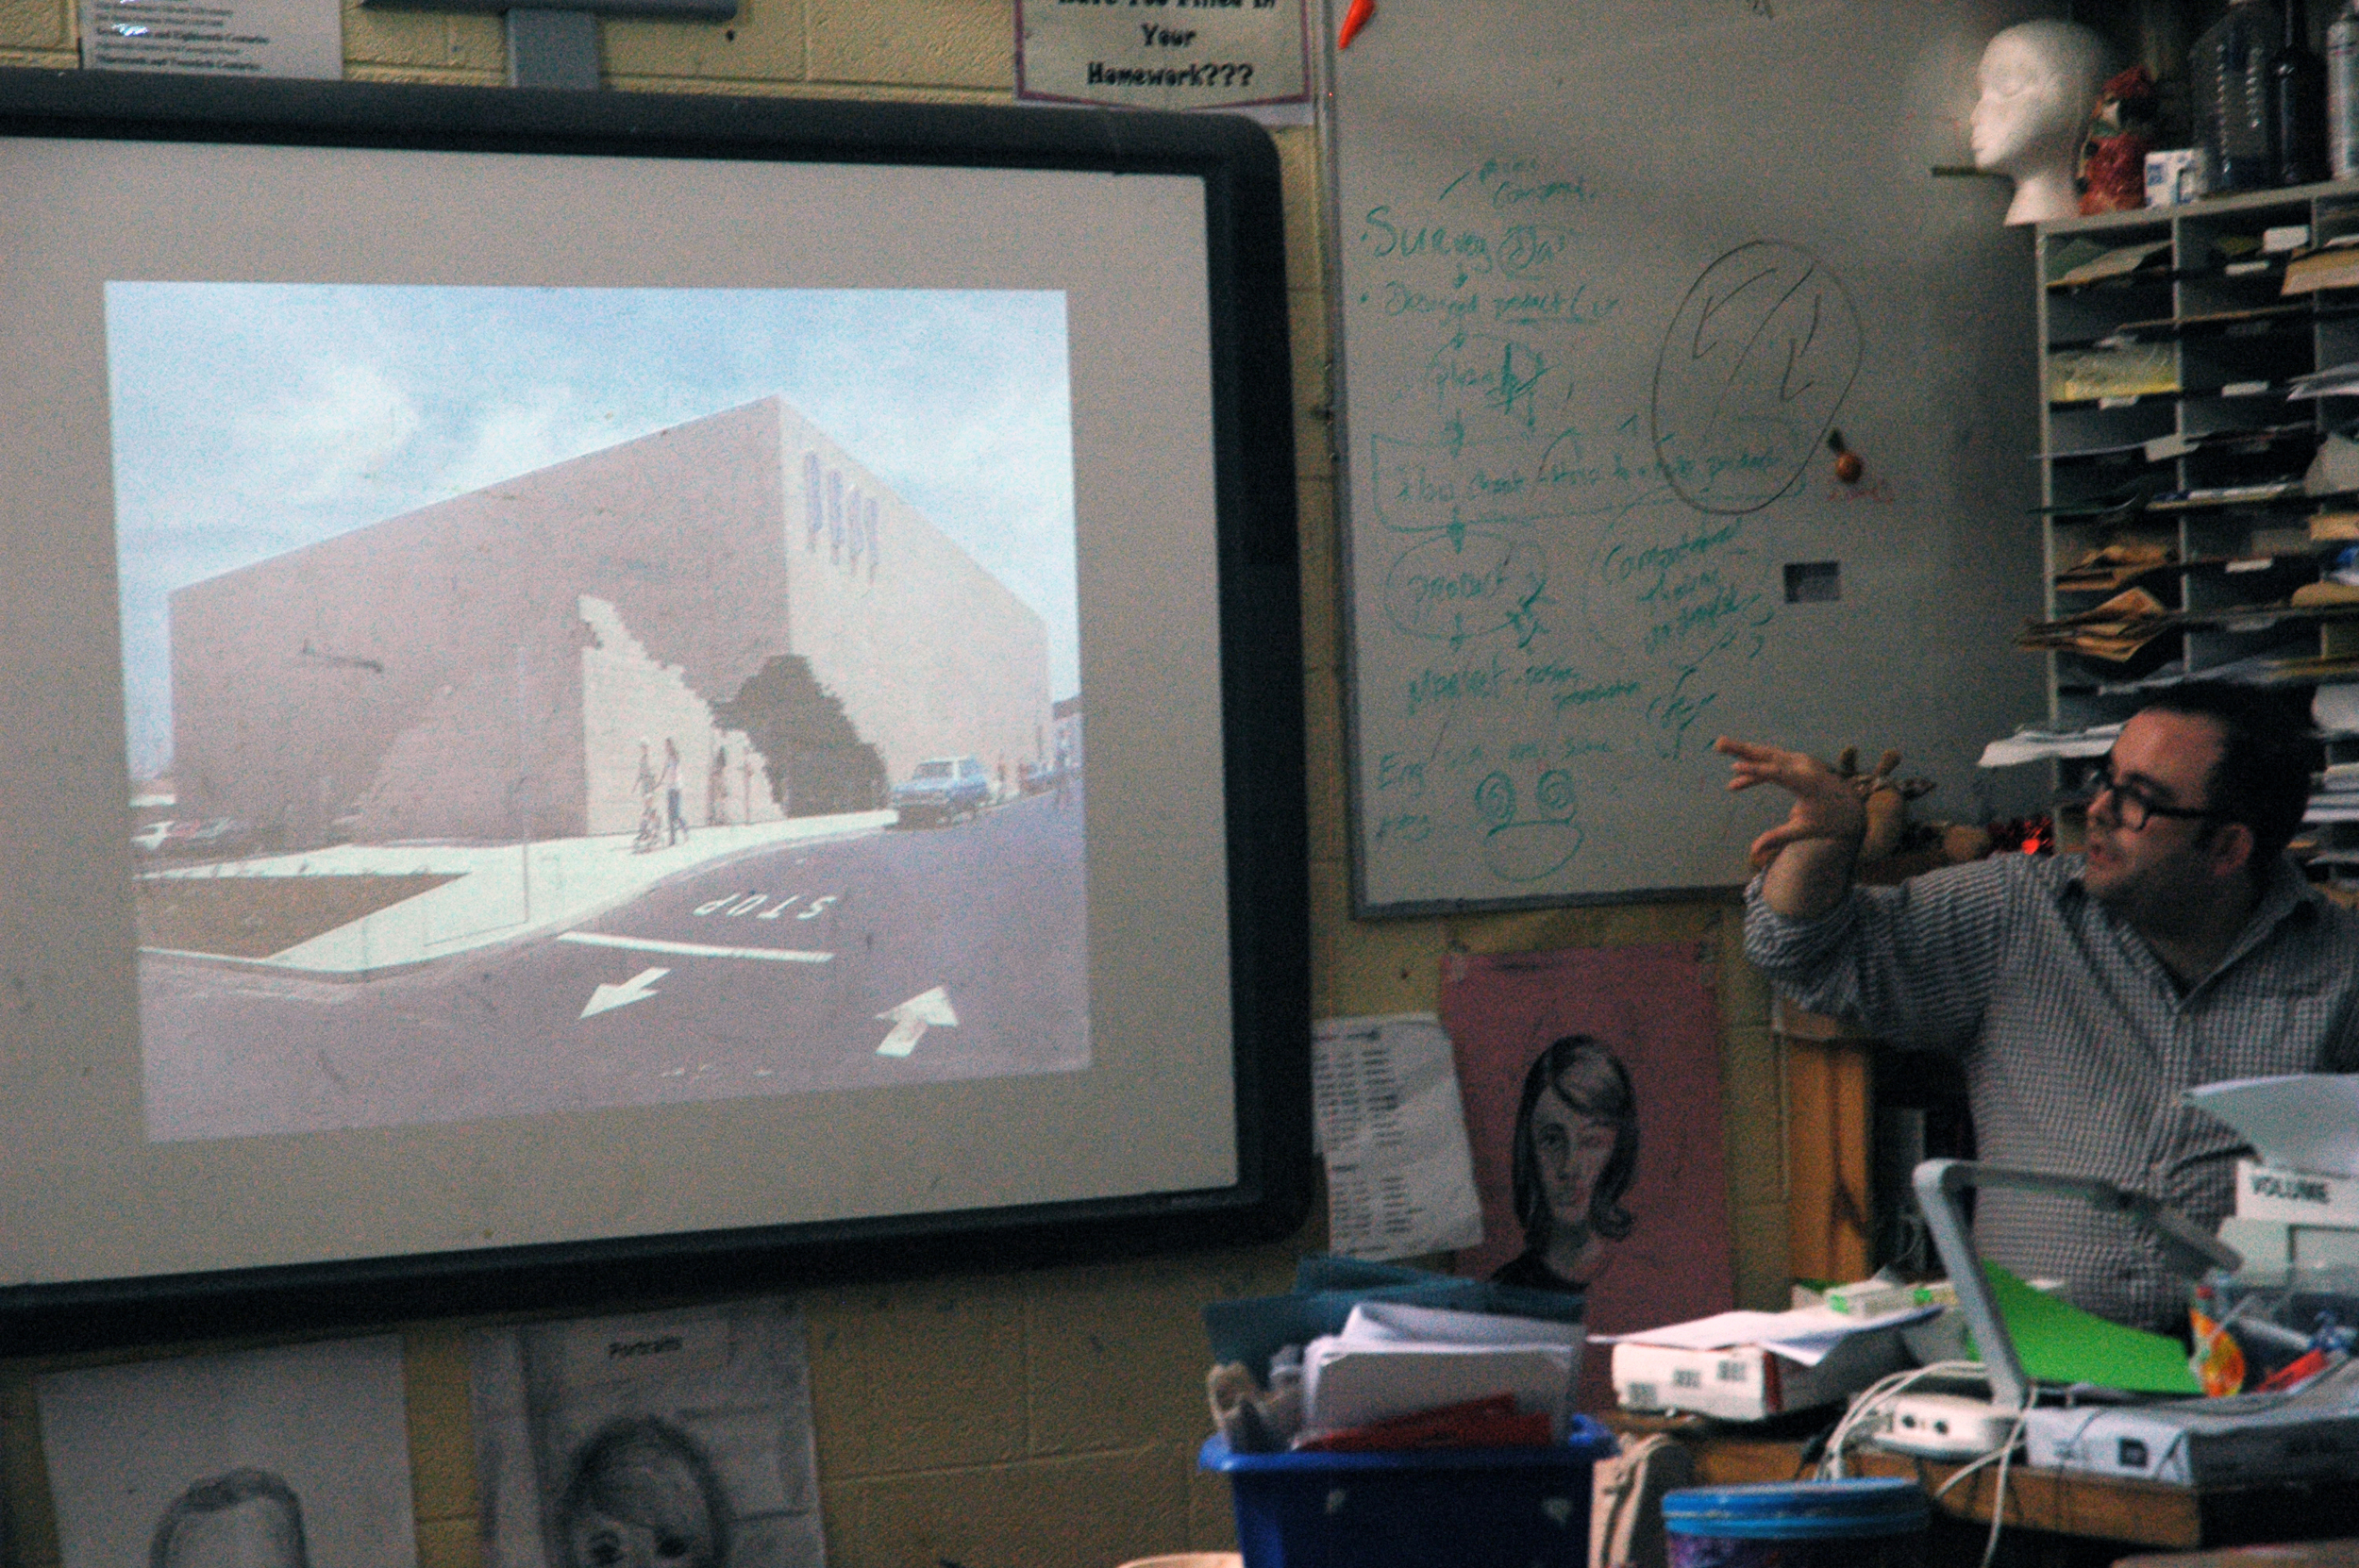 He presented images of a range of artists including postmodern architecture group SITE